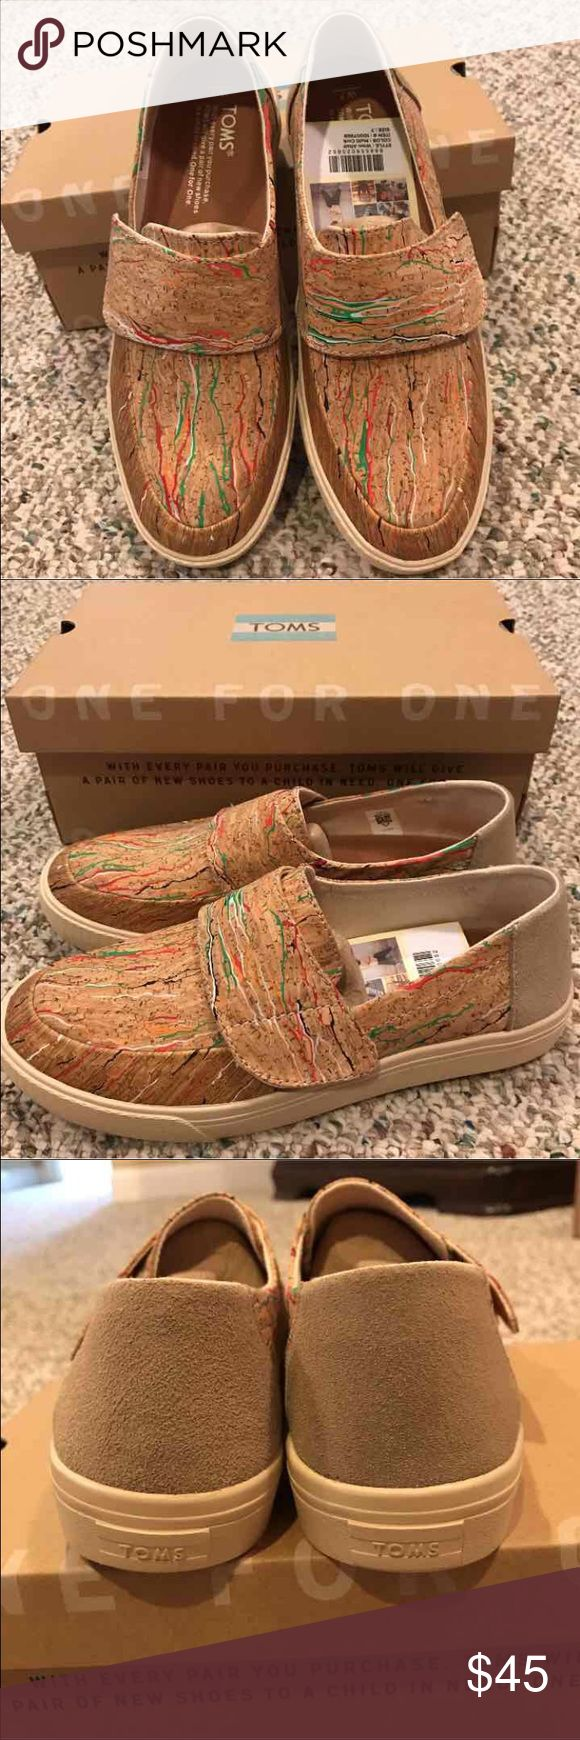 NWT TOMS Altair Multi Color Cork Shoes 7 PRICE FIRM Bundle & save  TOMS Shoes Flats & Loafers